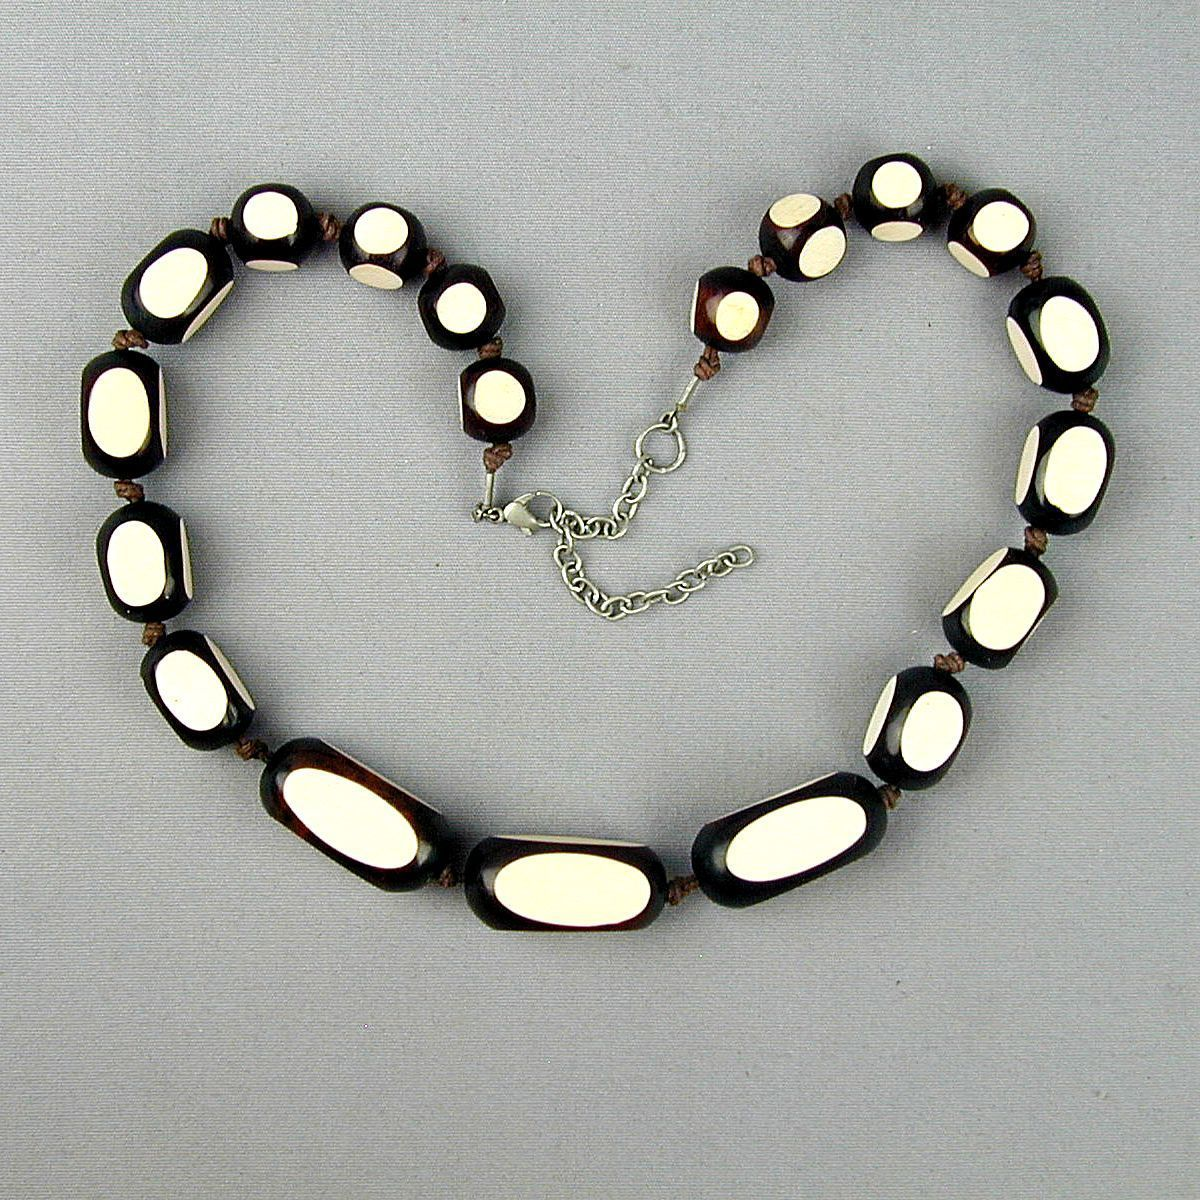 Vintage Encased White in Black Modernist Bead Necklace - Pop Art Era